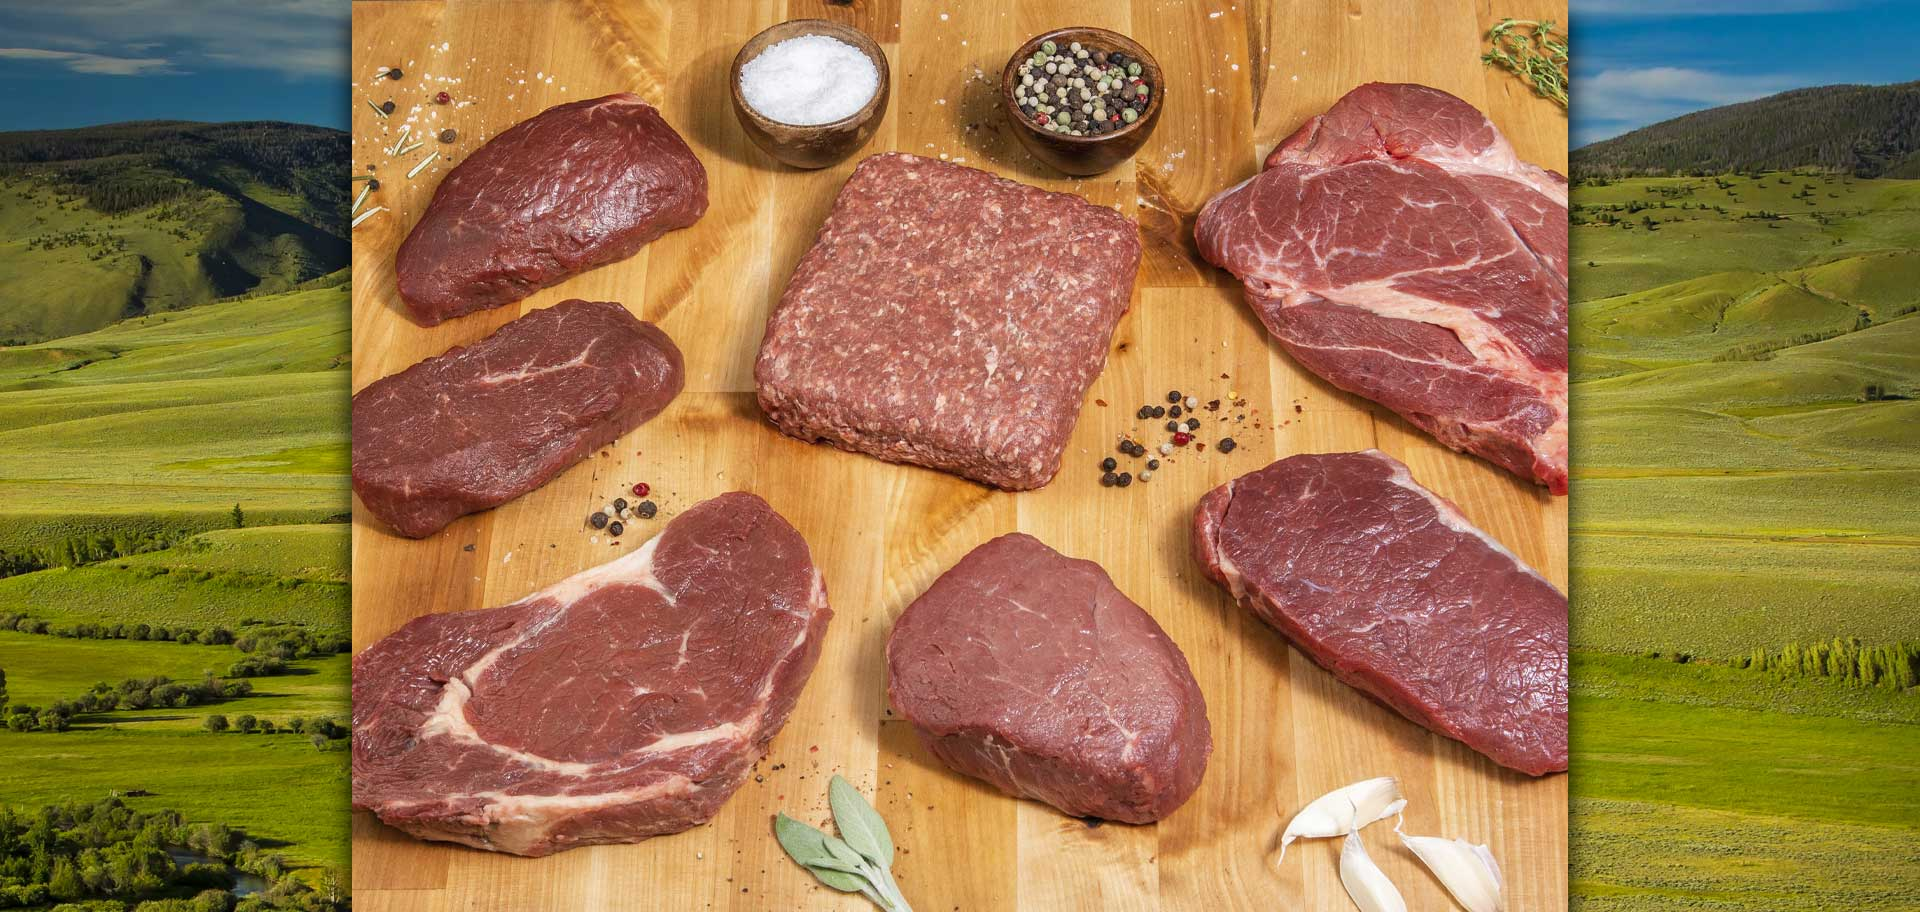 Great Range Premium Bison fresh cuts